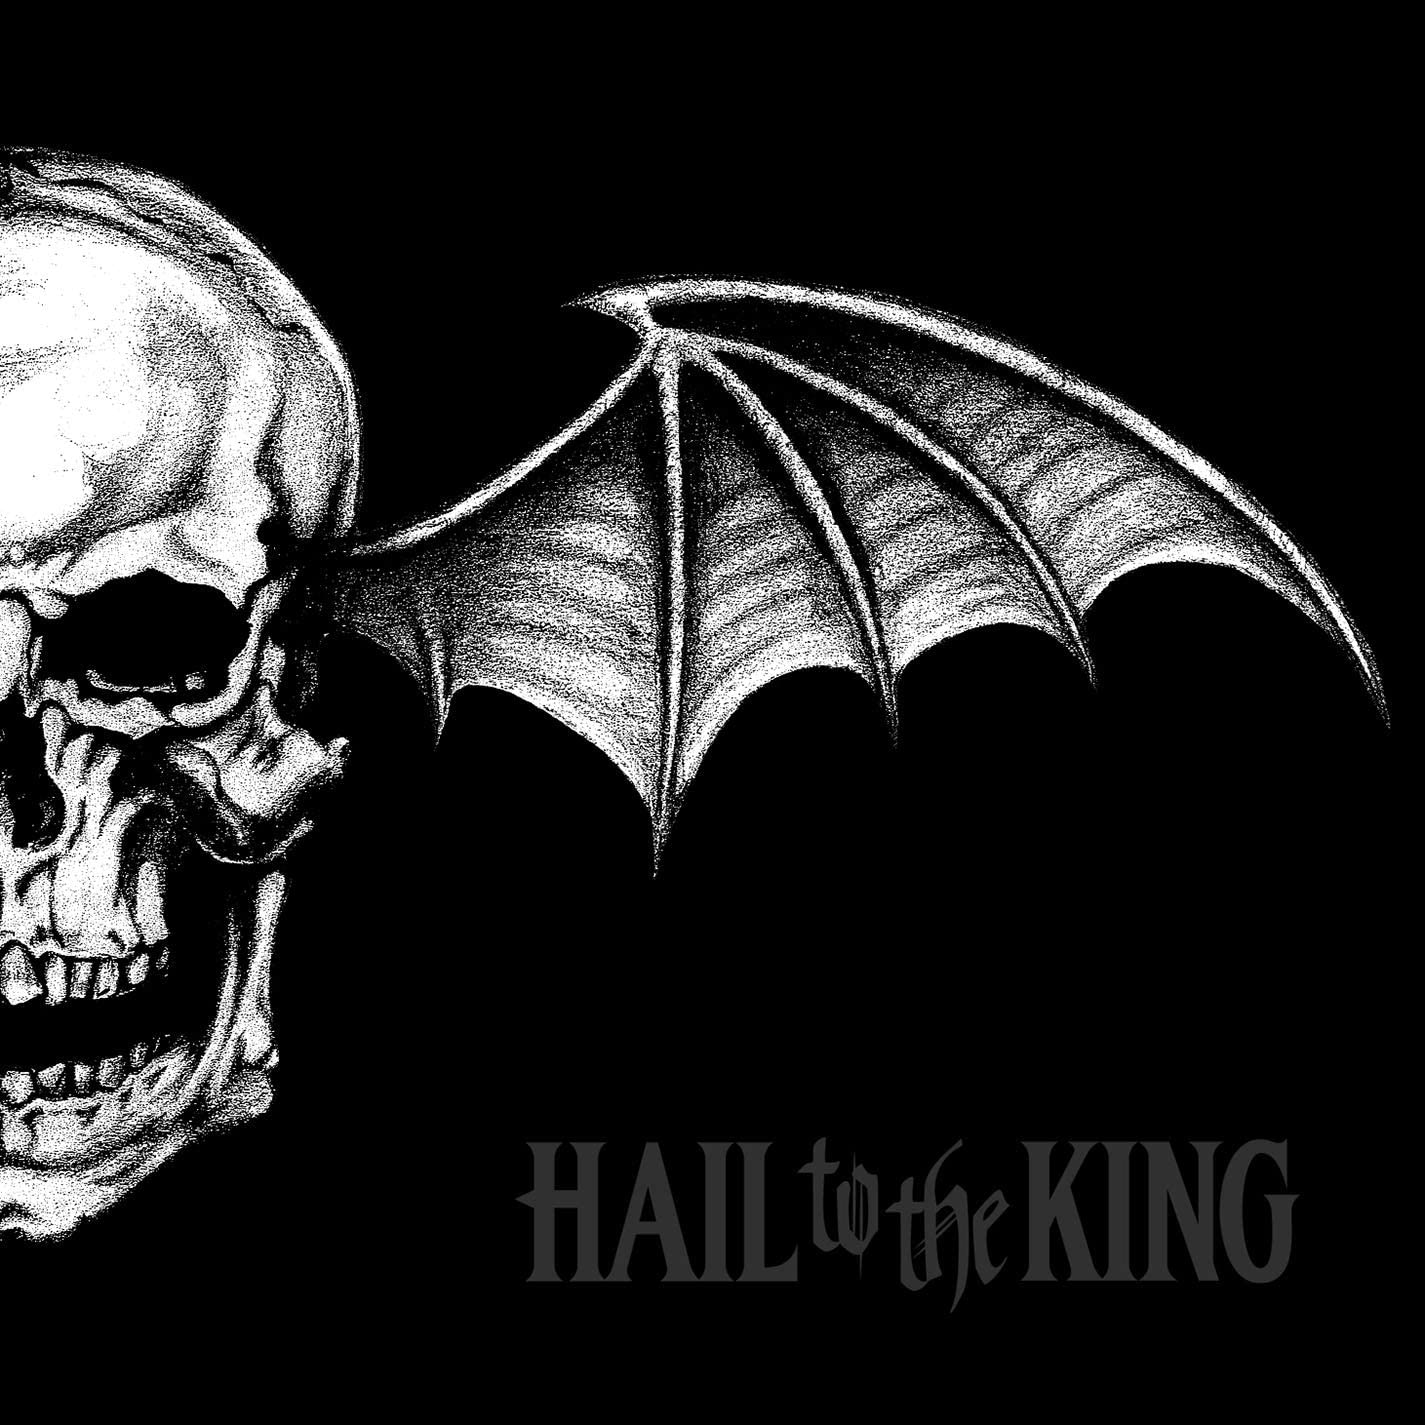 hail to the king アイキャッチ